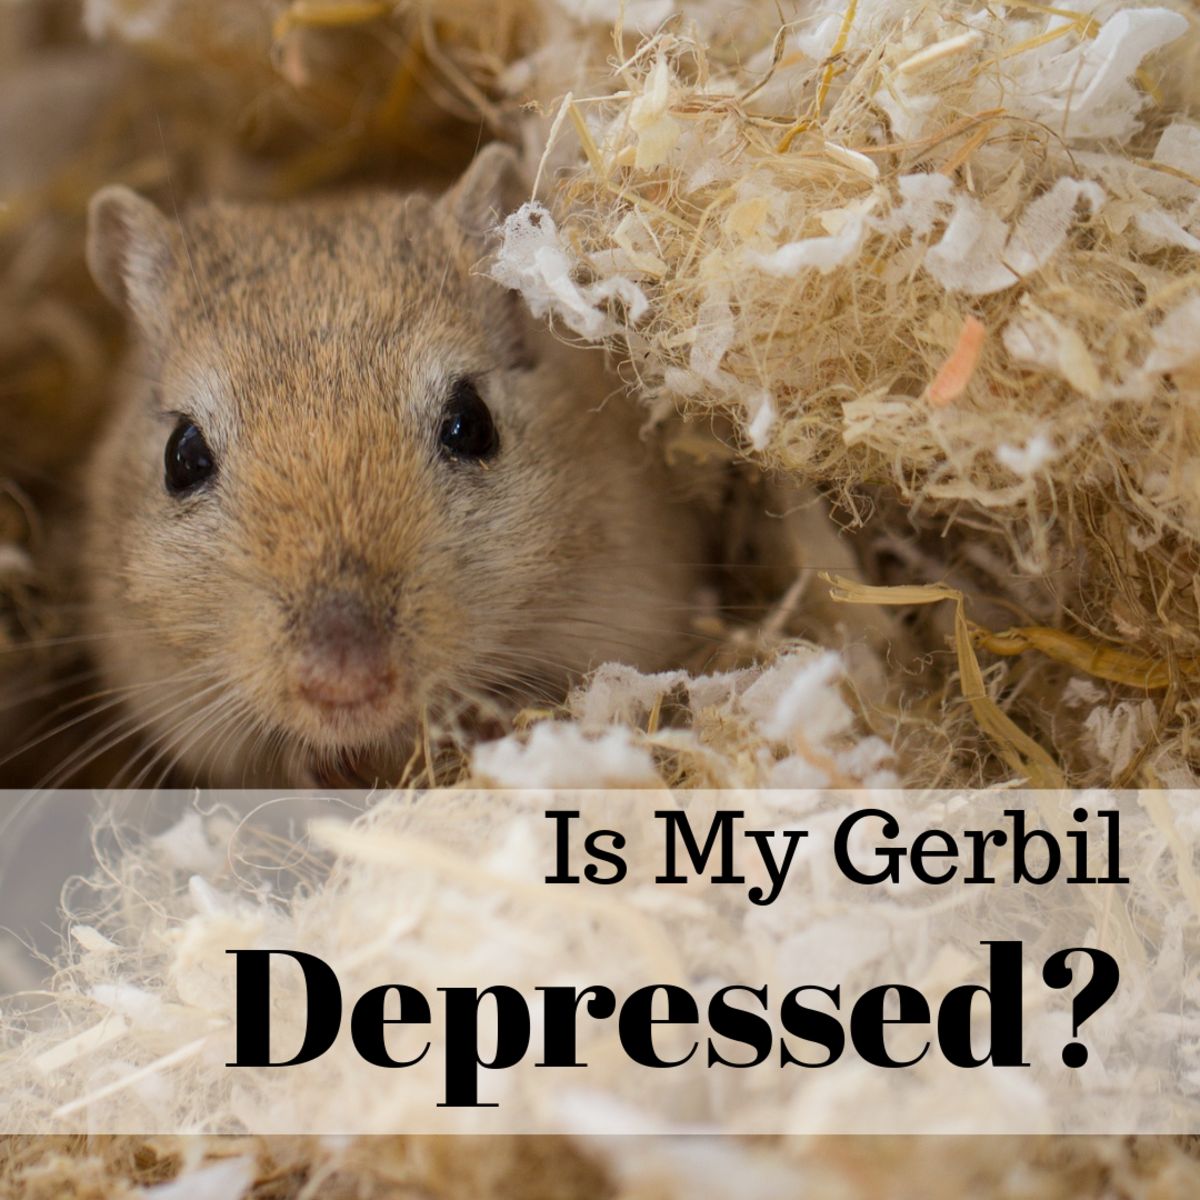 How to Identify and Help Depressed Gerbils